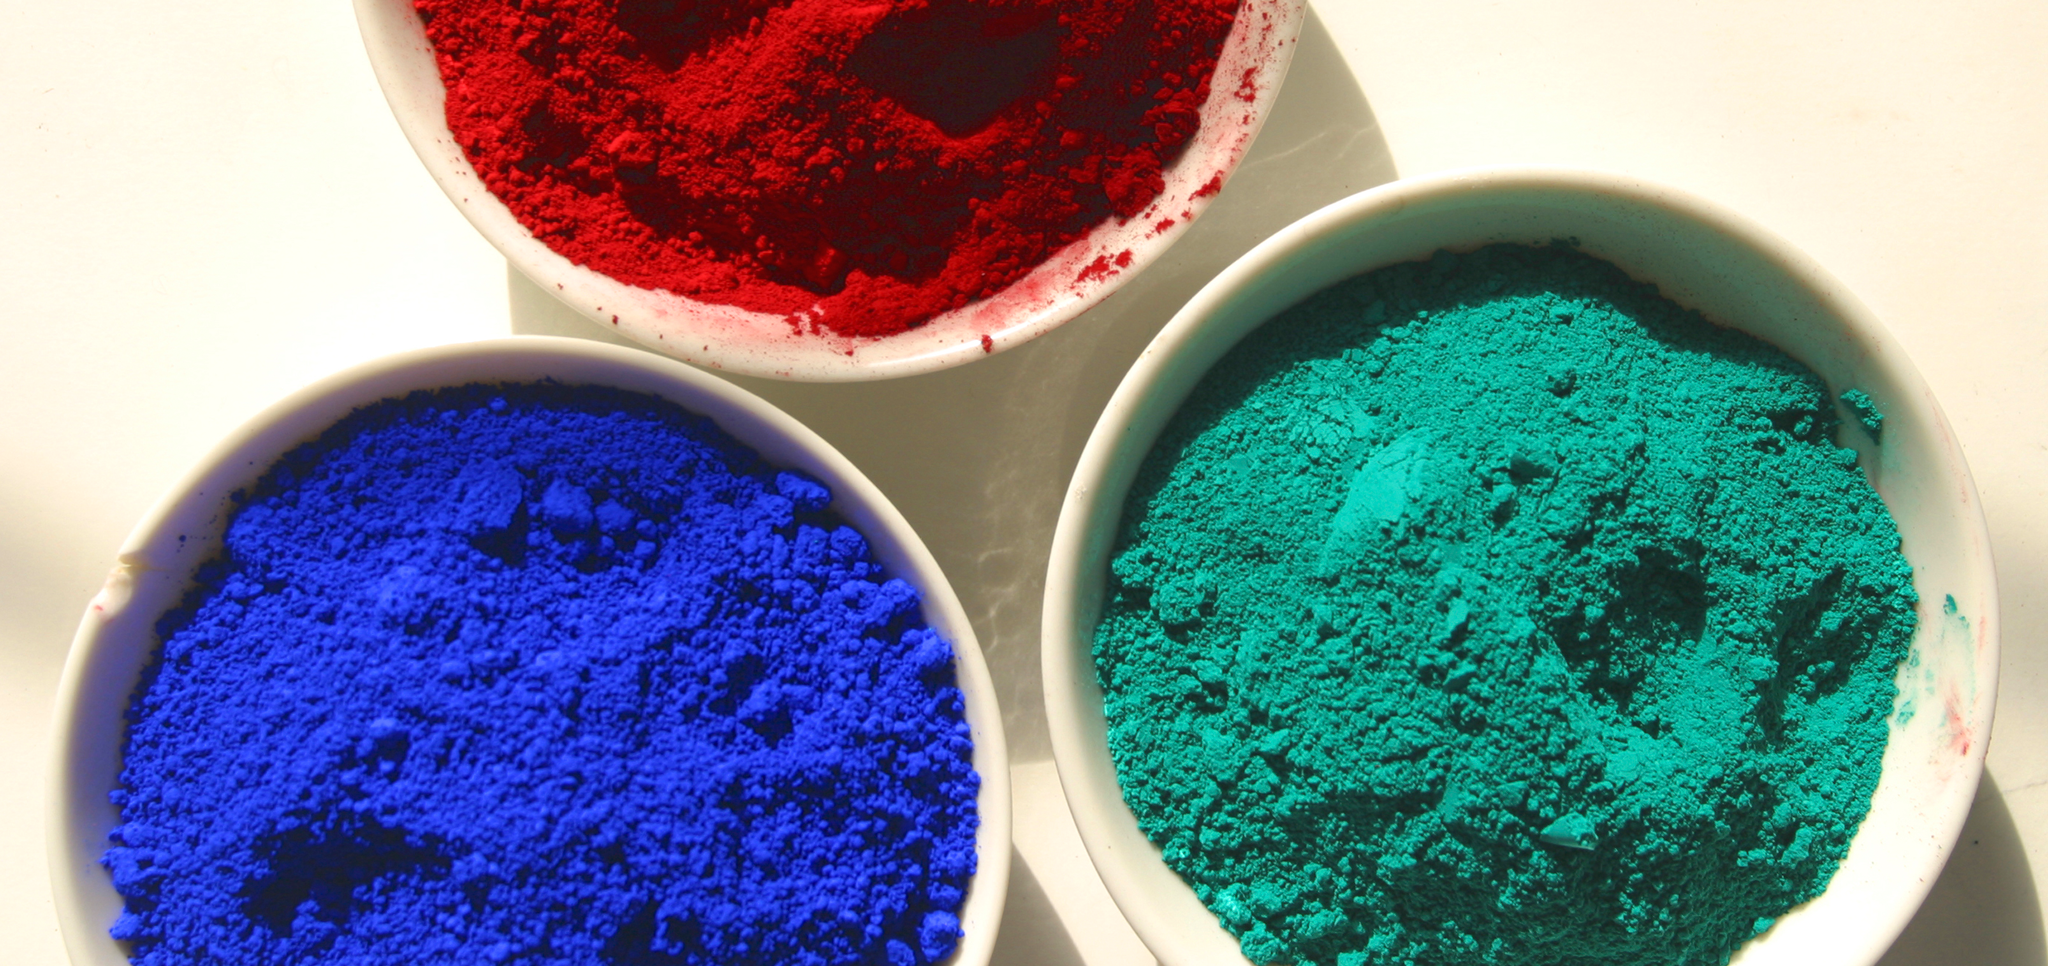 Picture of 3 ceramic containers of powdered ink pigment